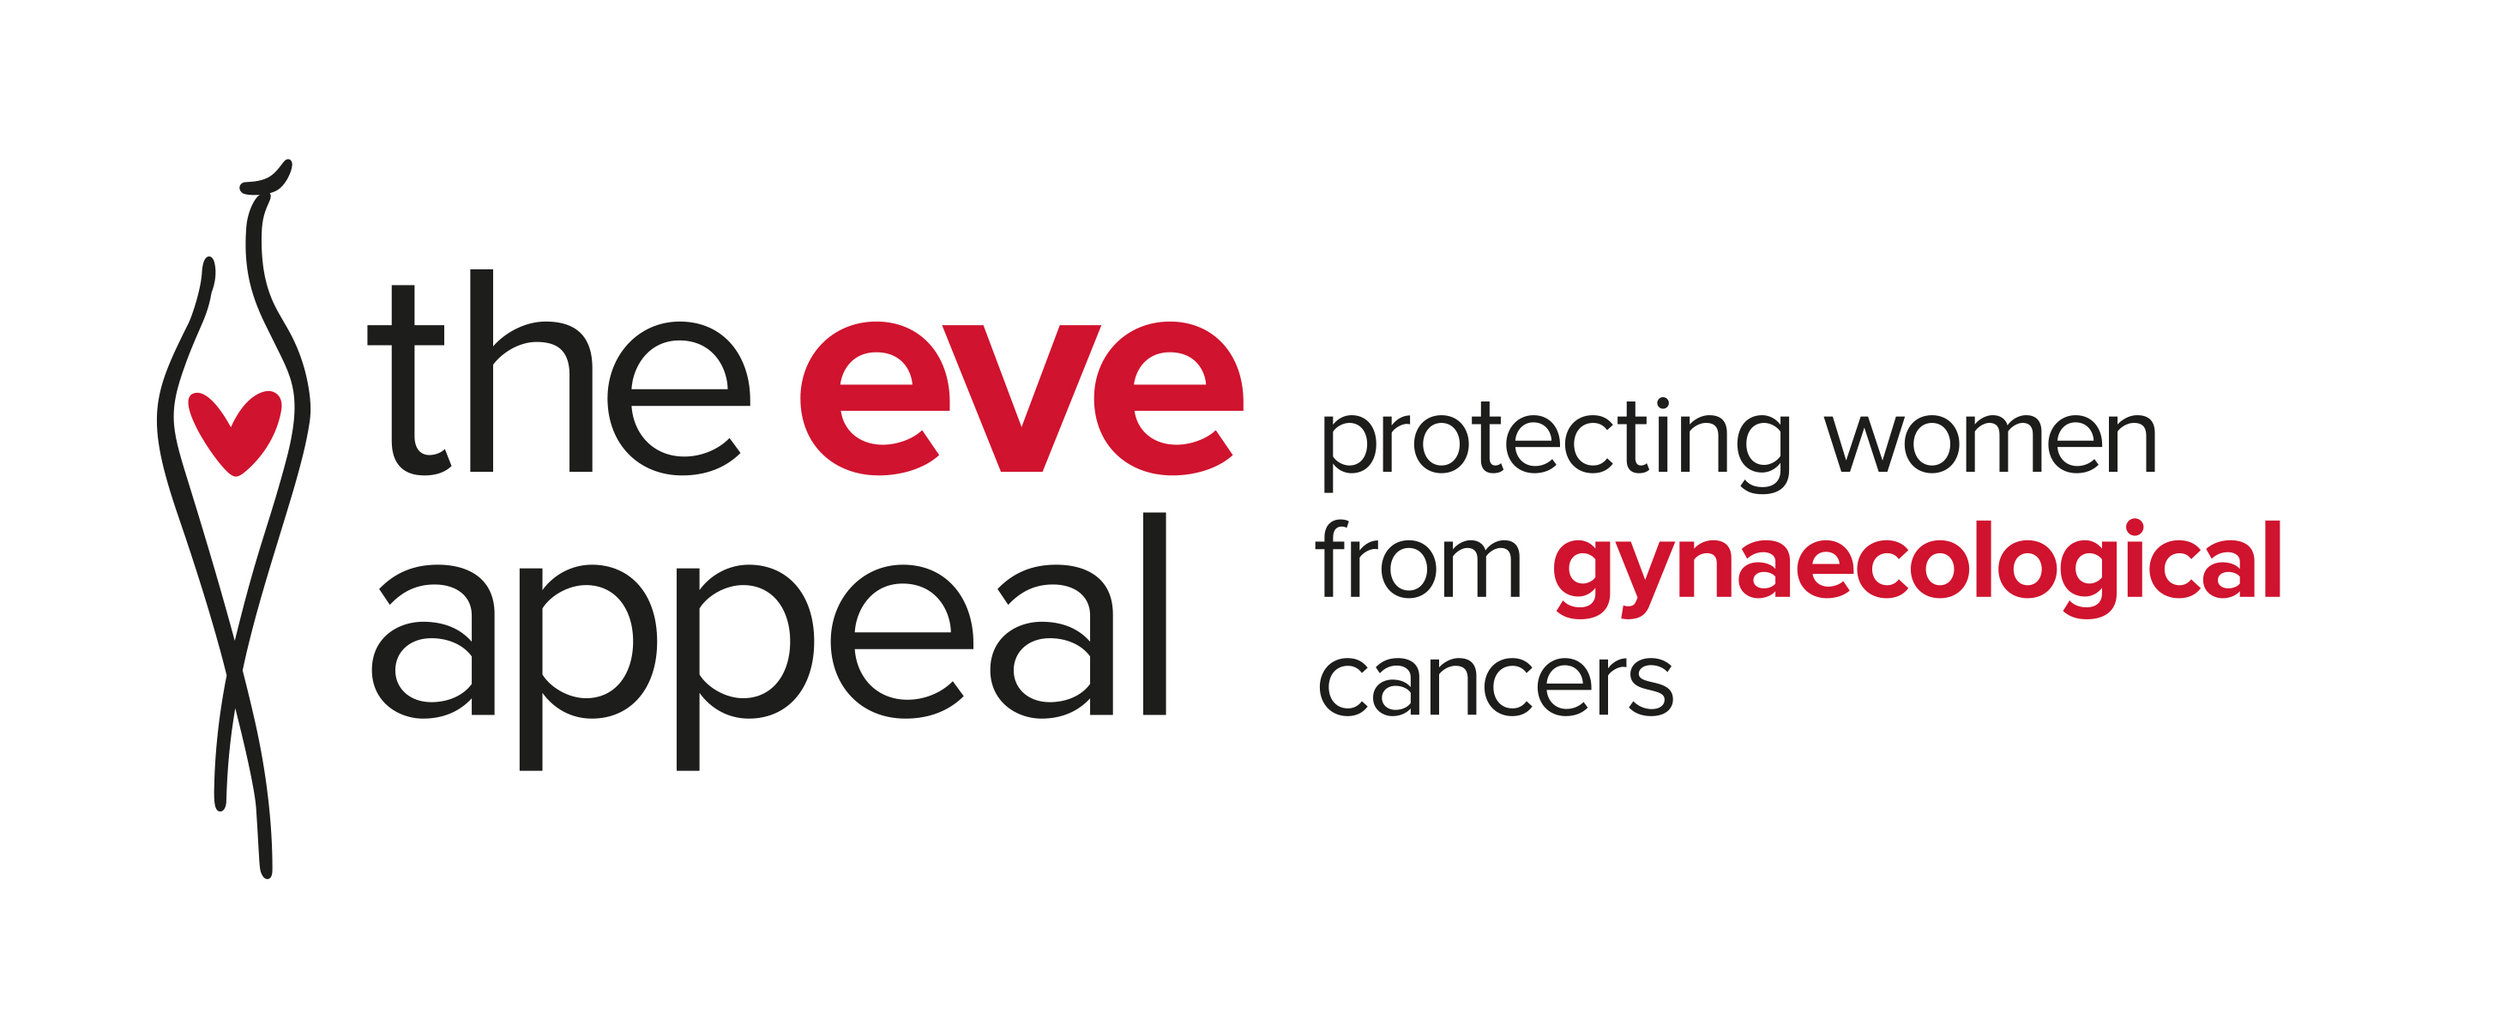 The Eve Appeal 'the only UK national charity raising awareness and funding research into the five gynaecological cancers – ovarian, womb, cervical, vaginal and vulval.'